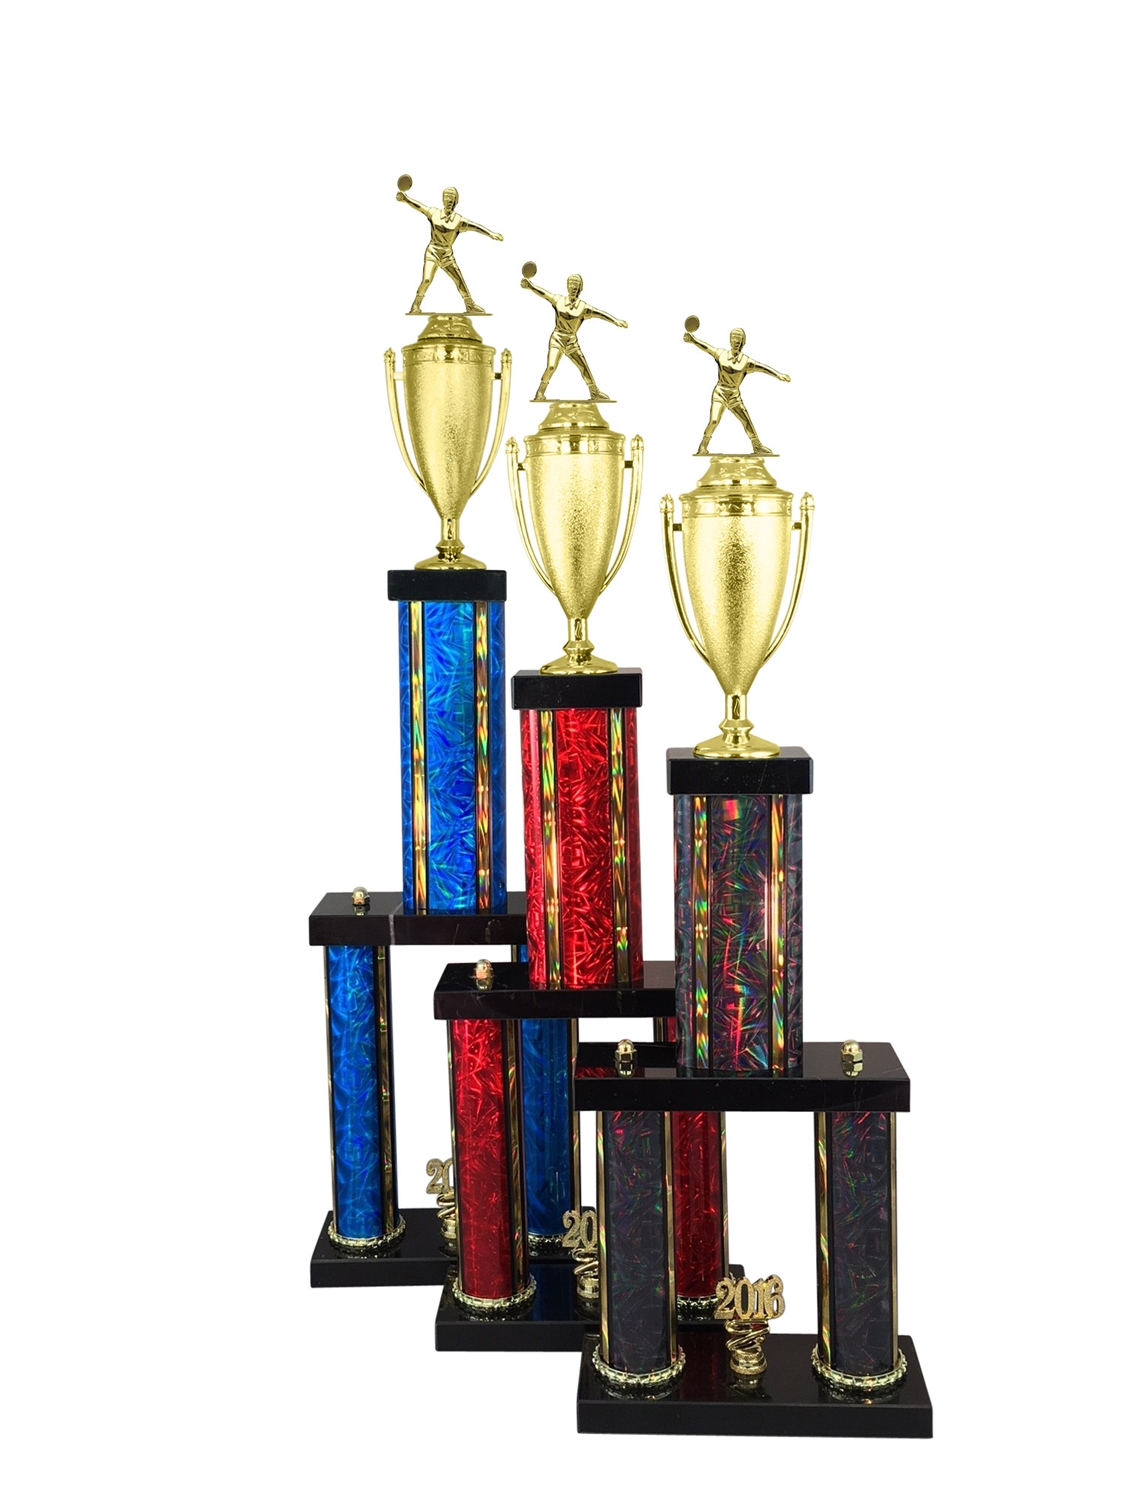 Female Ping Pong Trophy Available in 11 Color & 6 Size Options